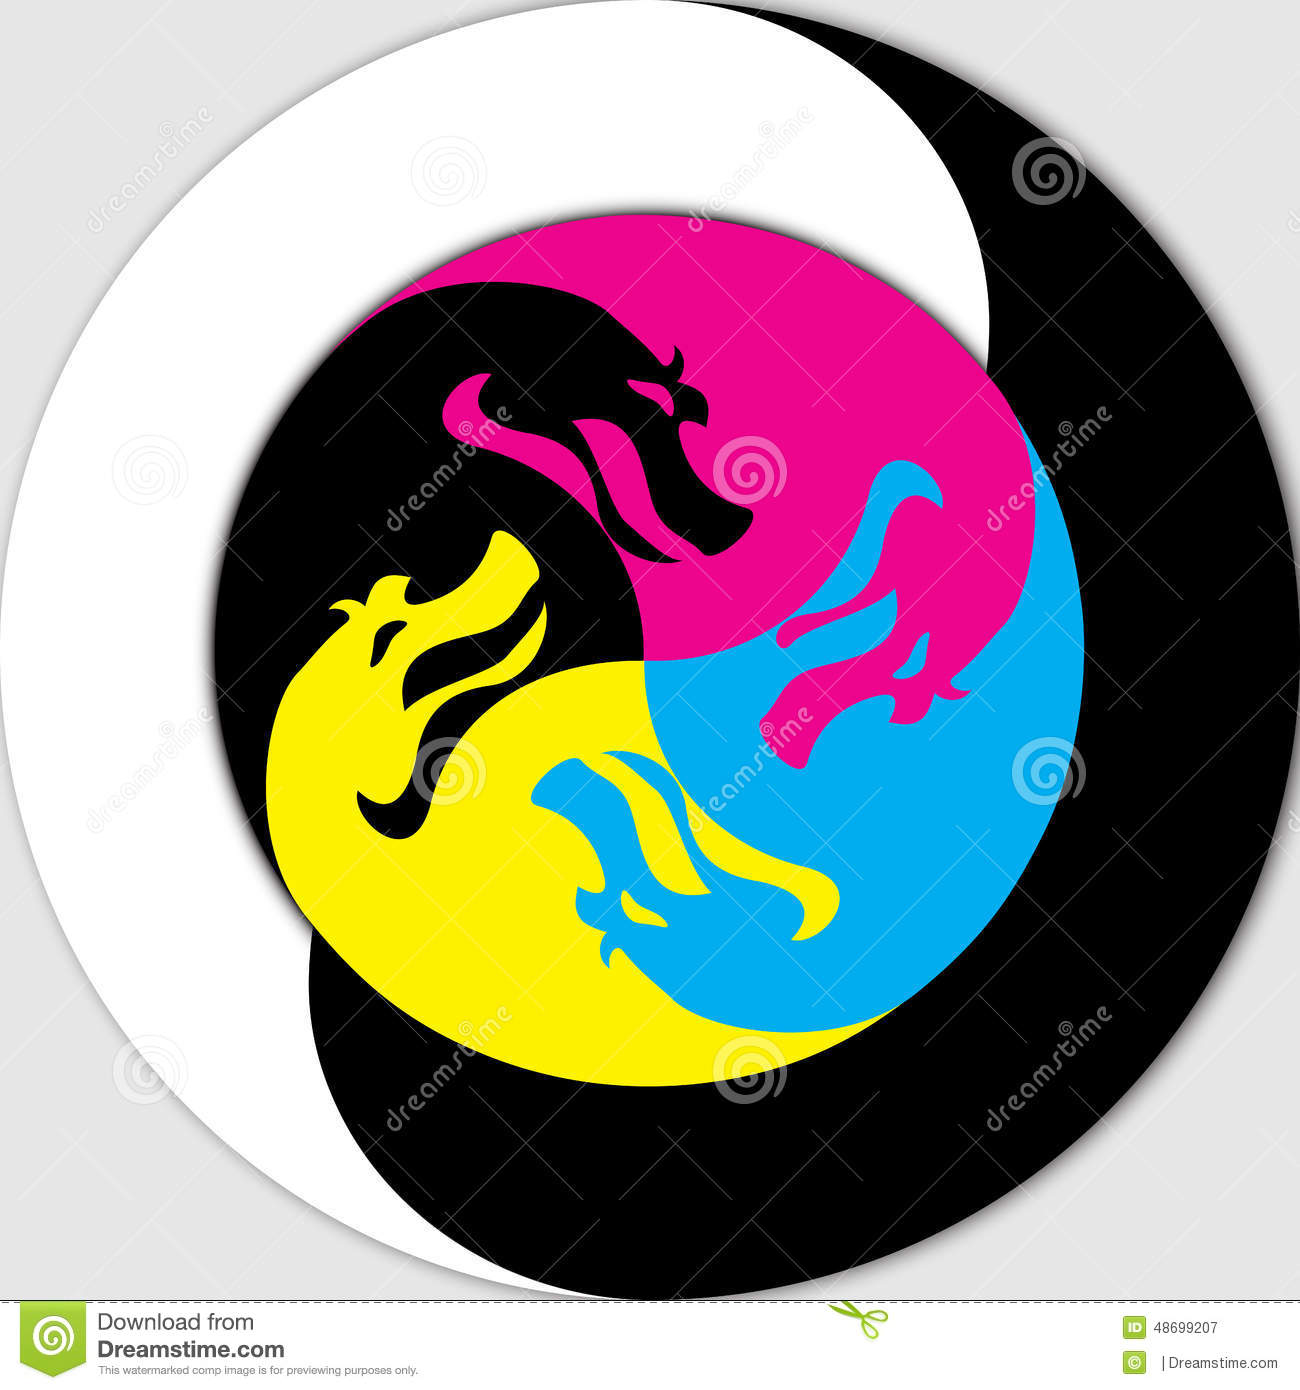 Yin Yang Dragon Stock Photos, Images, & Pictures - 273 Images